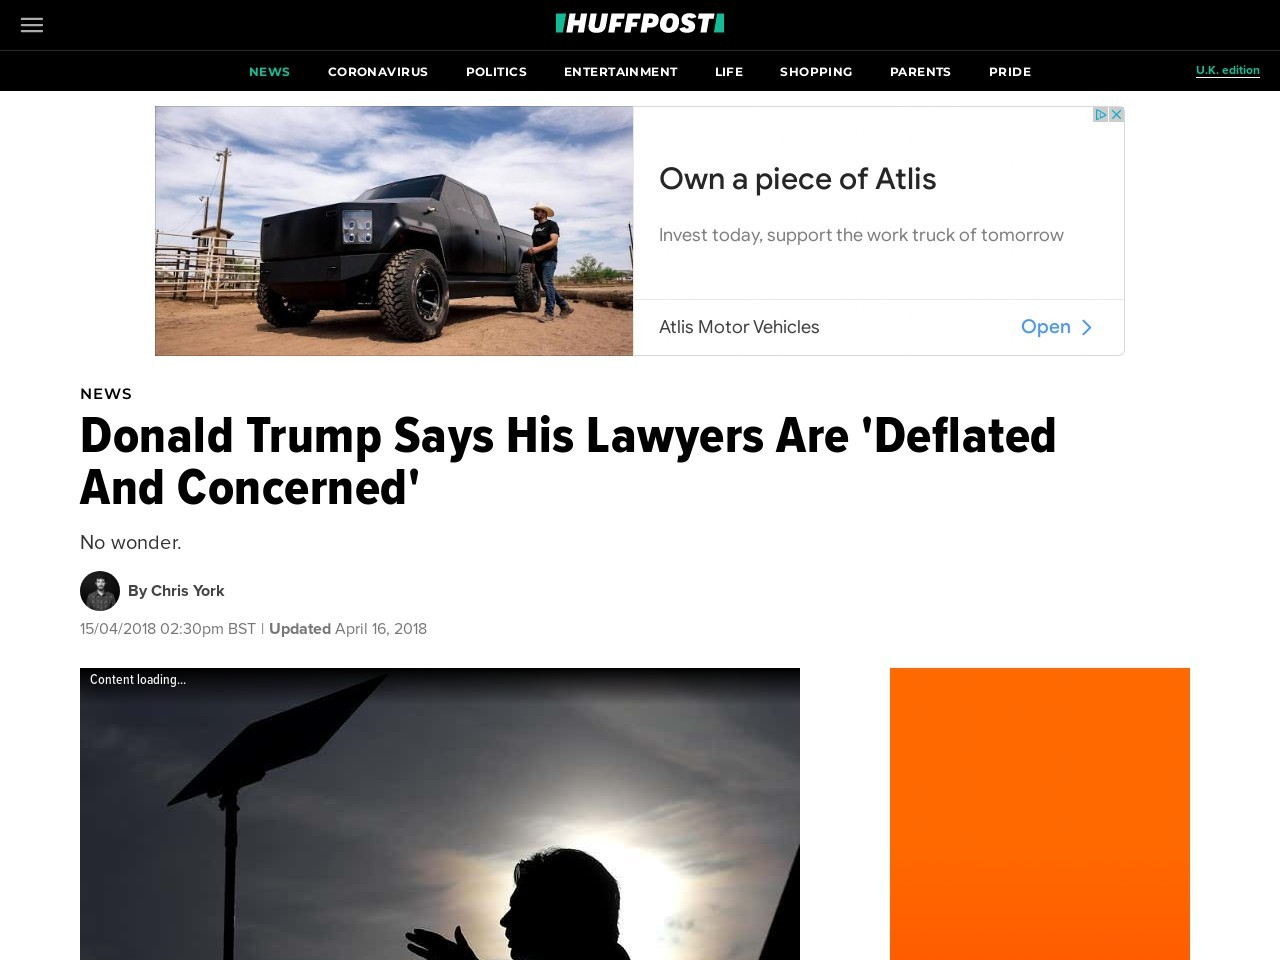 Donald Trump Says His Lawyers Are 'Deflated And Concerned'